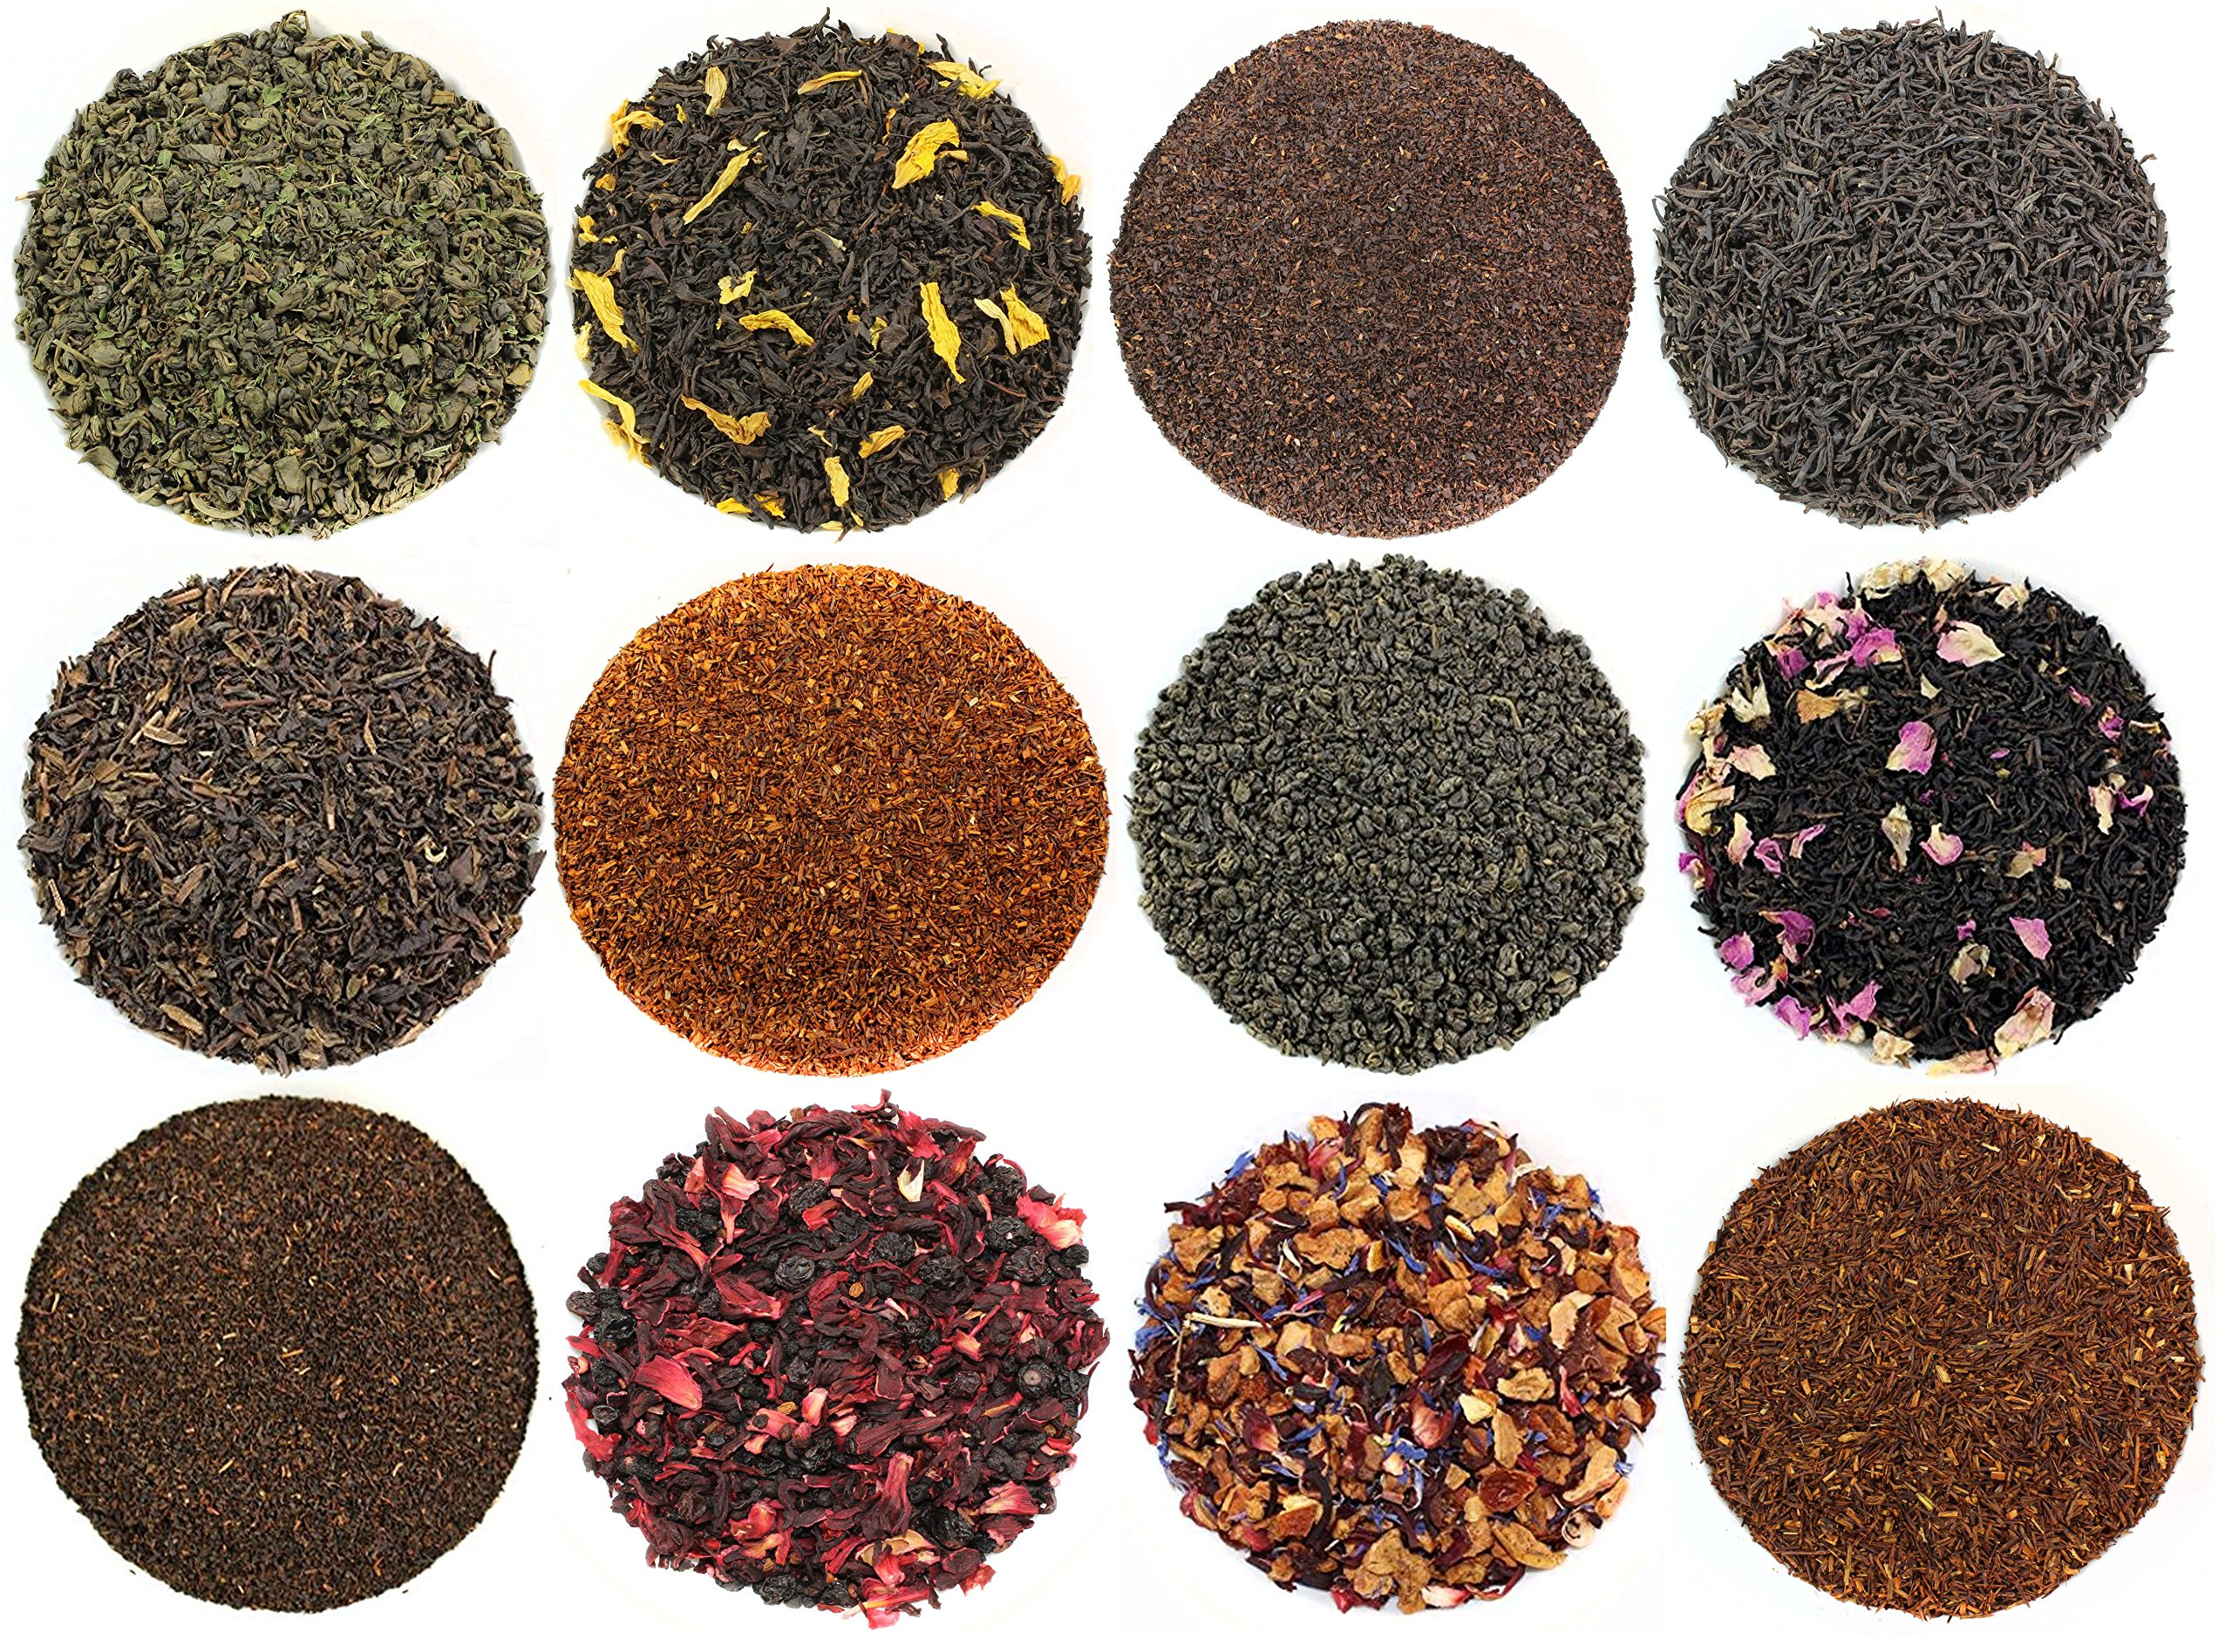 Sampler 12 Types of Loose Leaf Tea Image